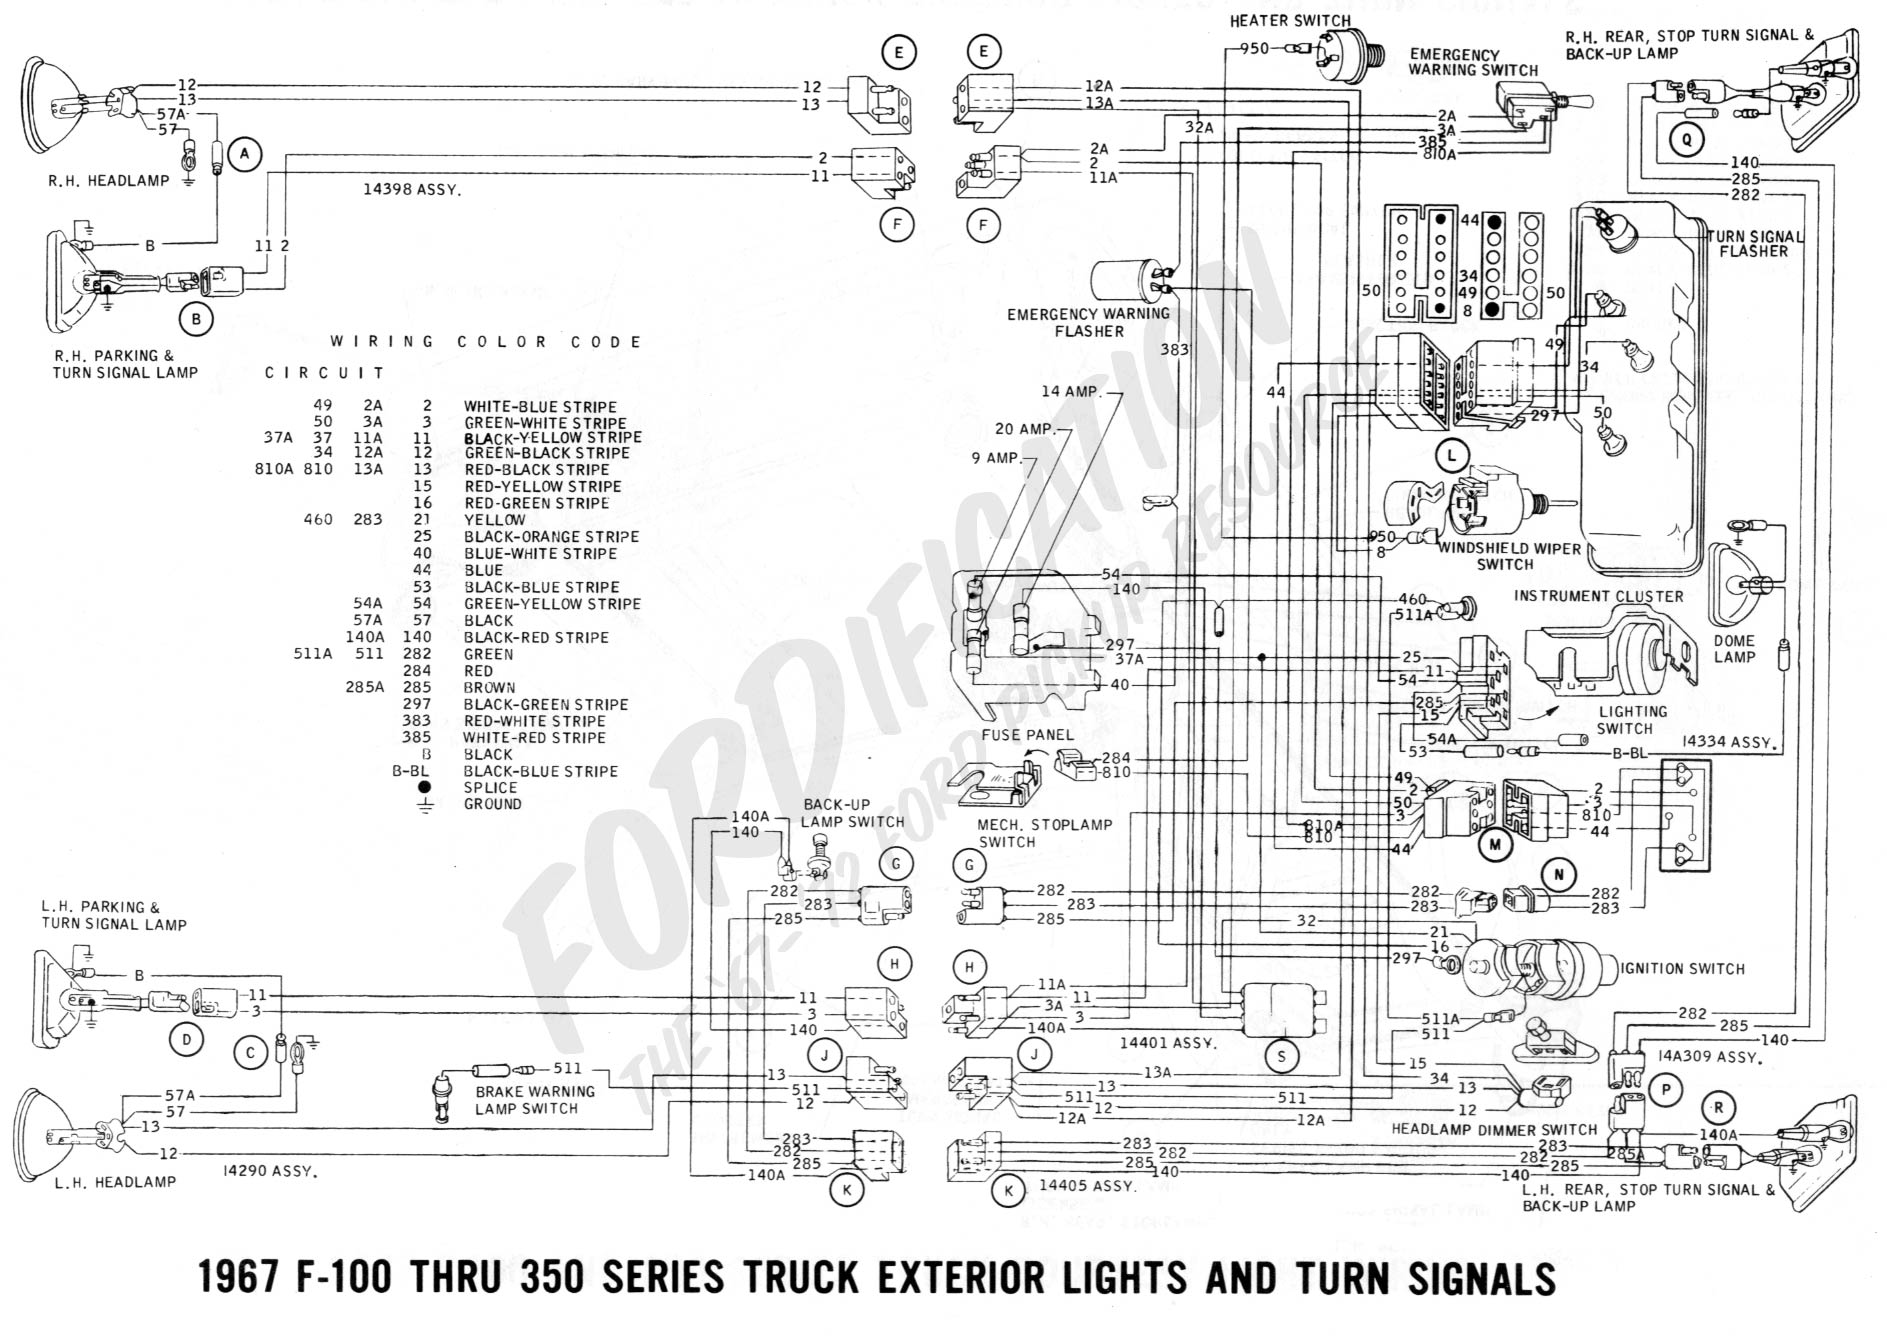 HP PartList together with HP PartList further IR7q 15546 besides Viewtopic as well Gm Automatic Transmission Diagrams. on 1955 chevy rear end diagram